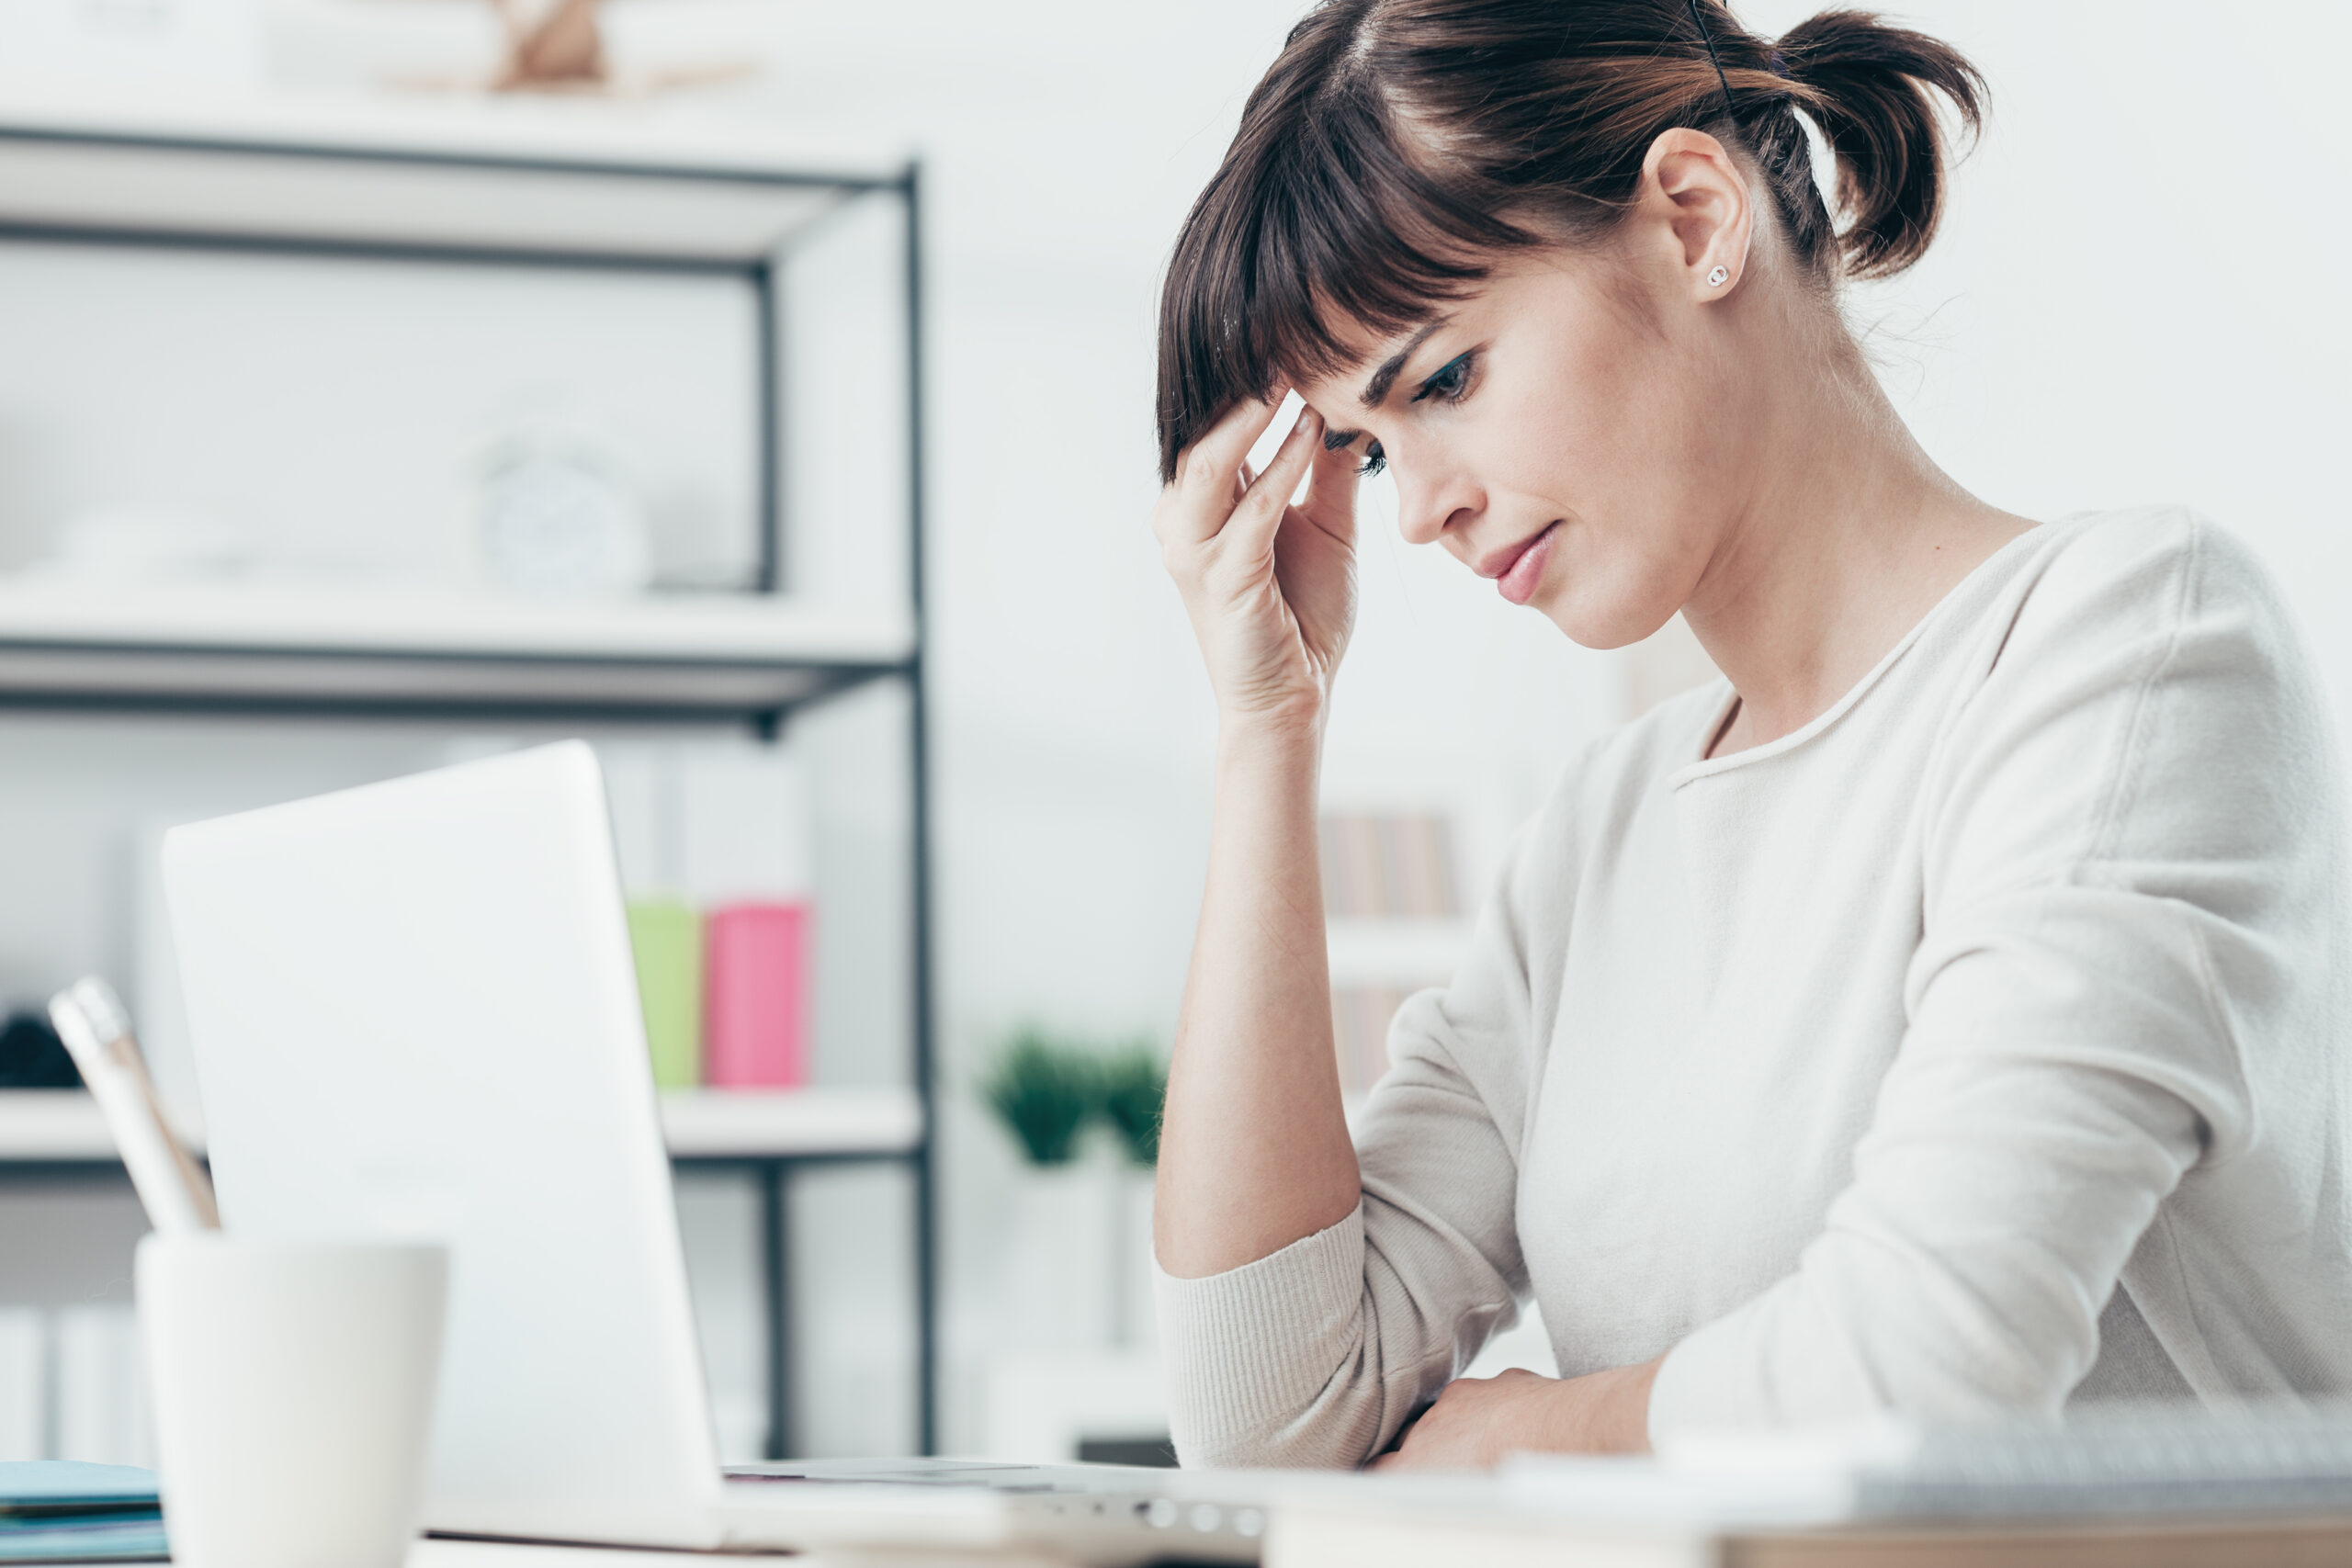 Tired woman having a bad headache, she is sitting at office desk and touching her temple